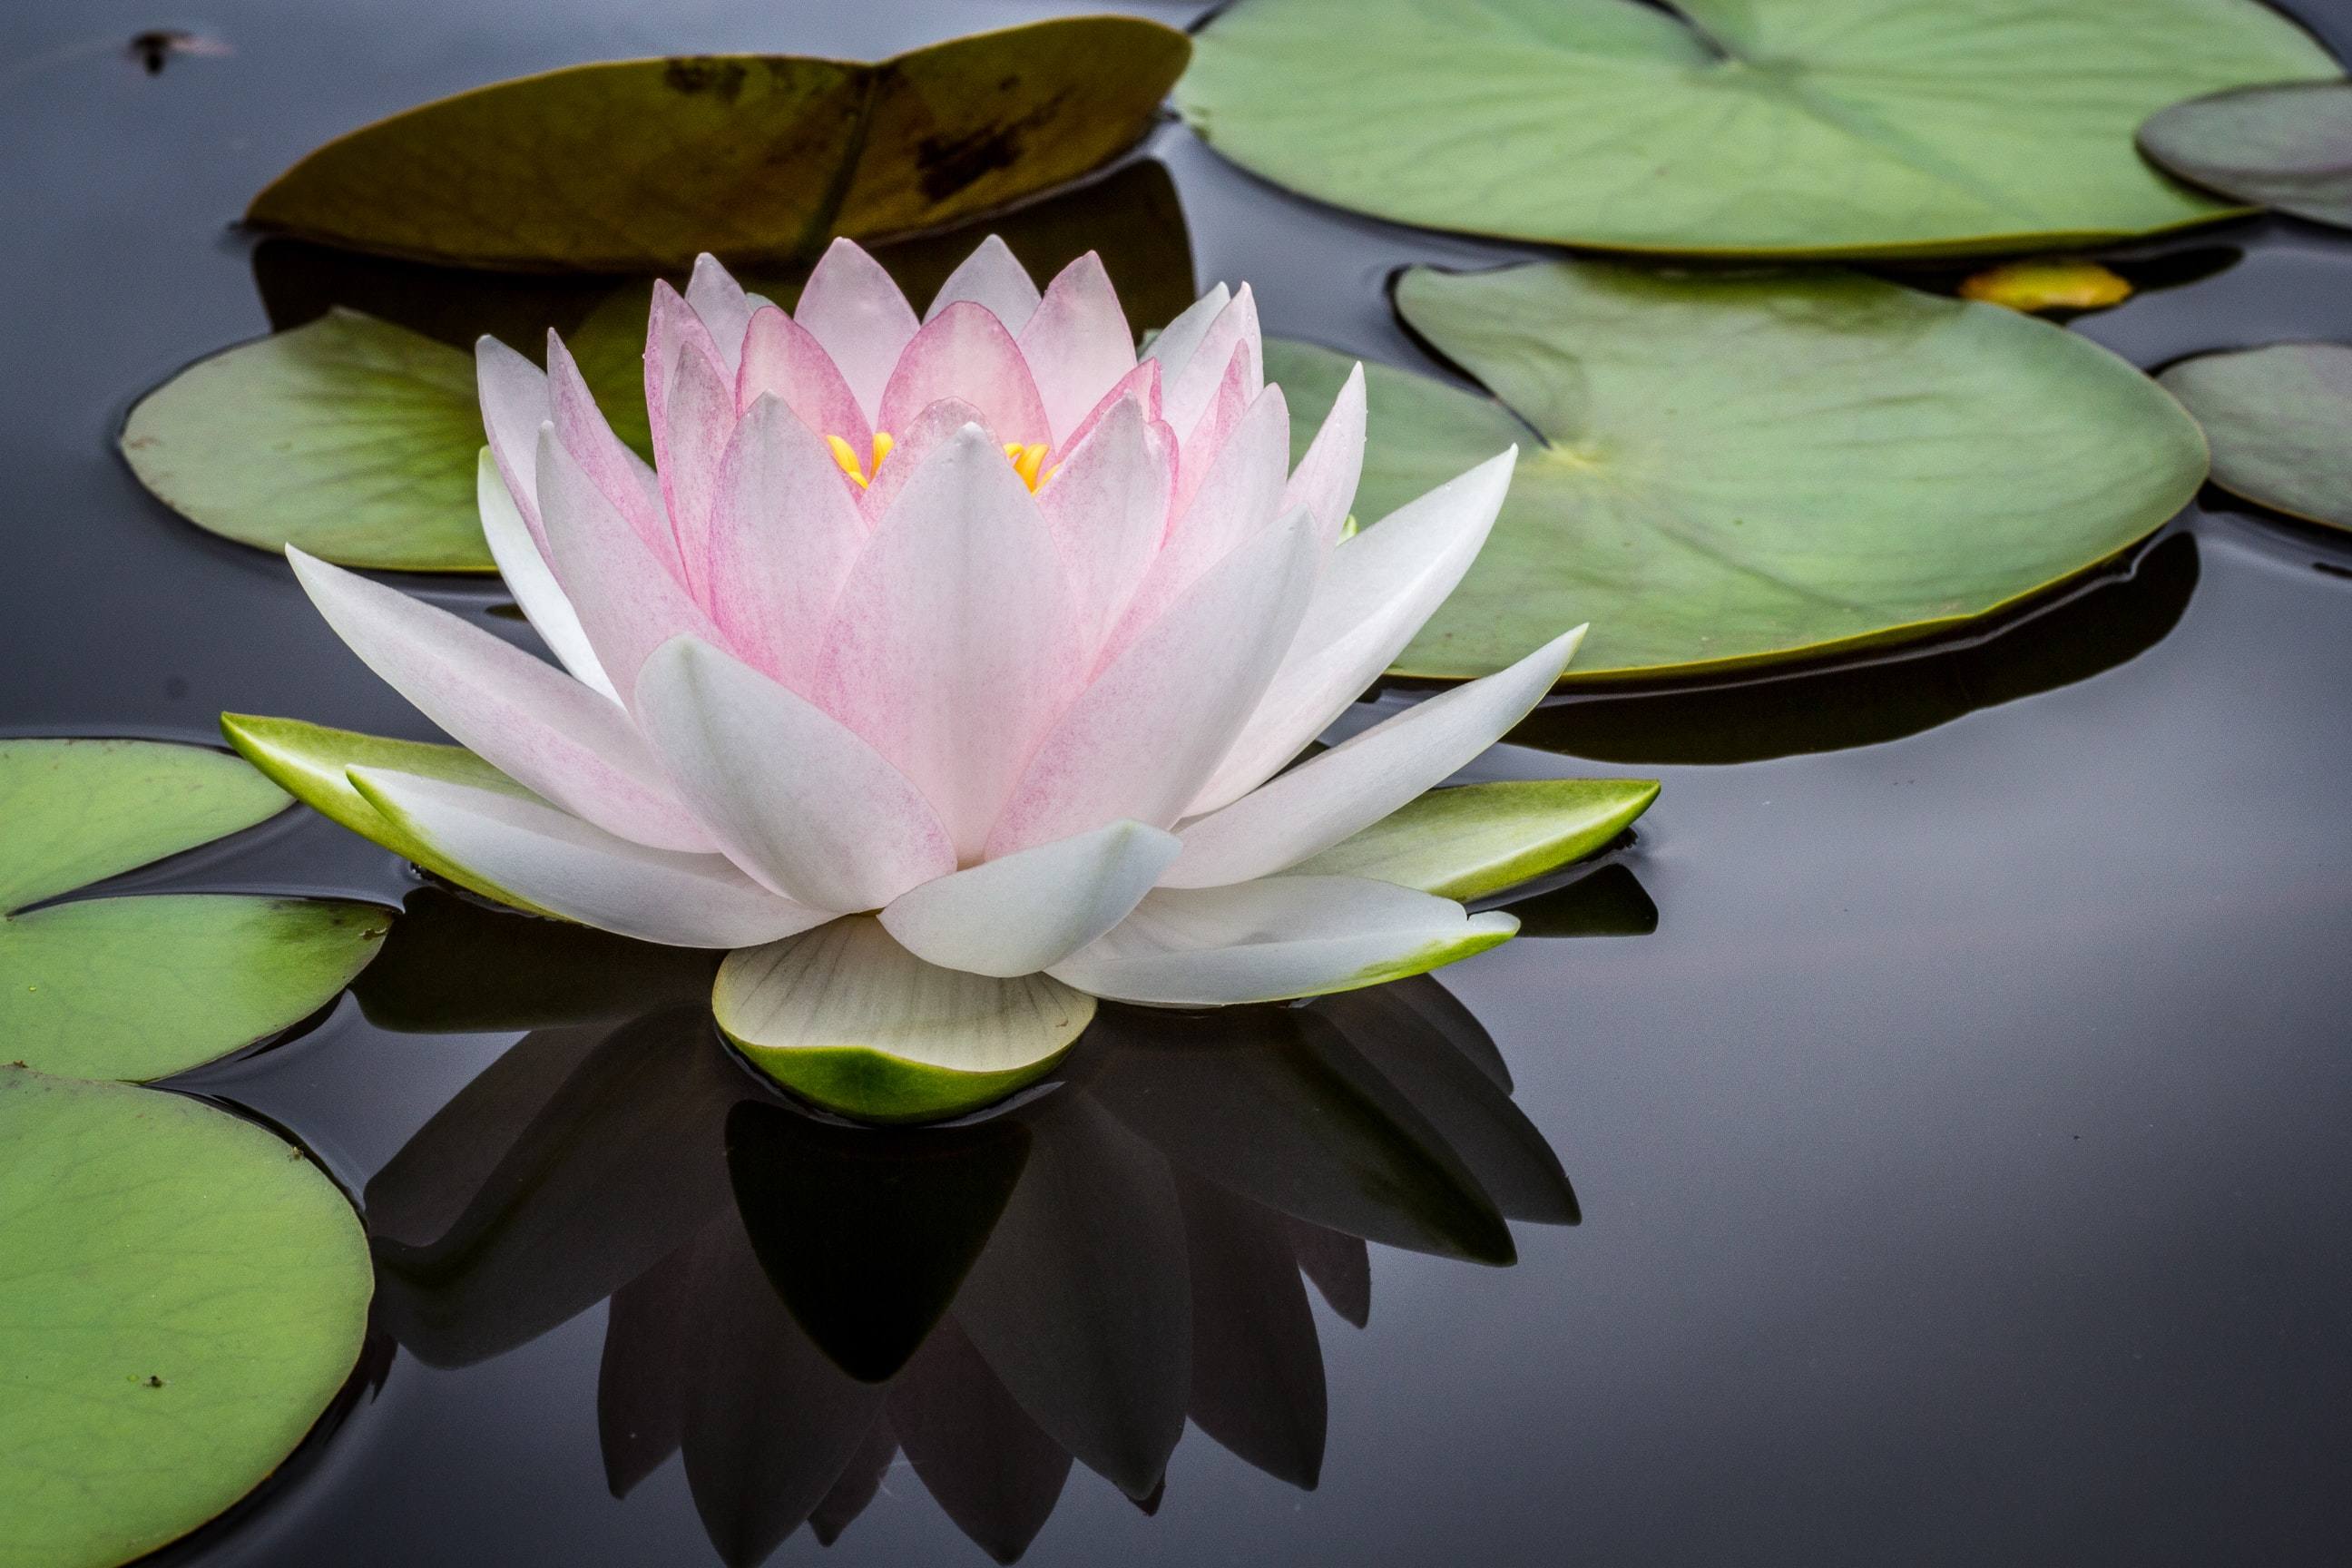 A white and pink water lily on the surface of water next to lily pads